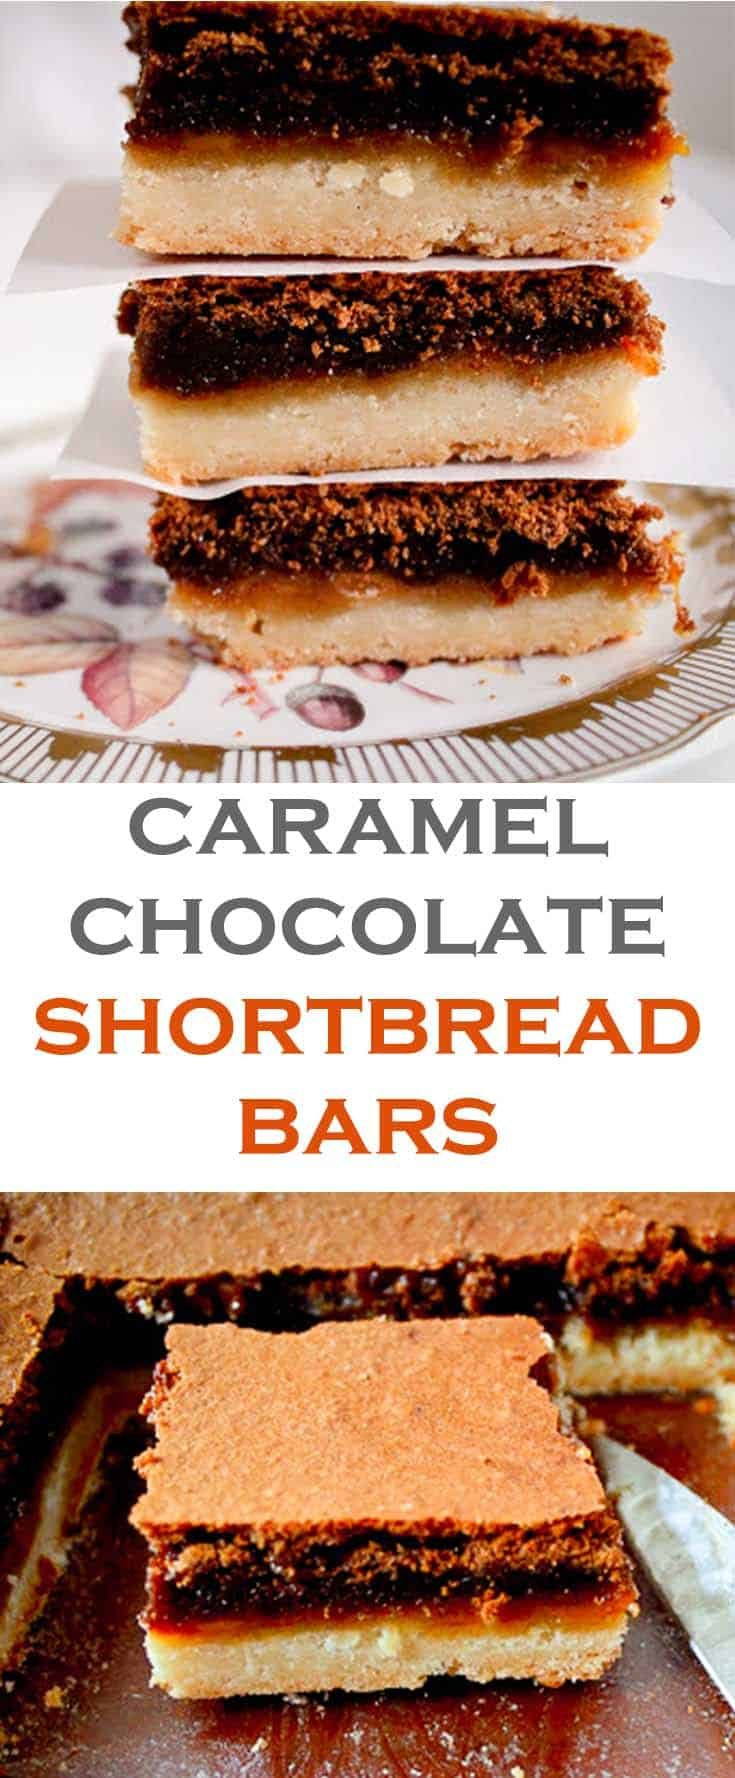 Caramel chocolate shortbread bars are a layered bar dessert that hits all the good points- did I mention the shortbread, the chocolate, and the caramel? So good! #abakershouse #caramel #chocolate #shortbread #layerbars #layerdessert